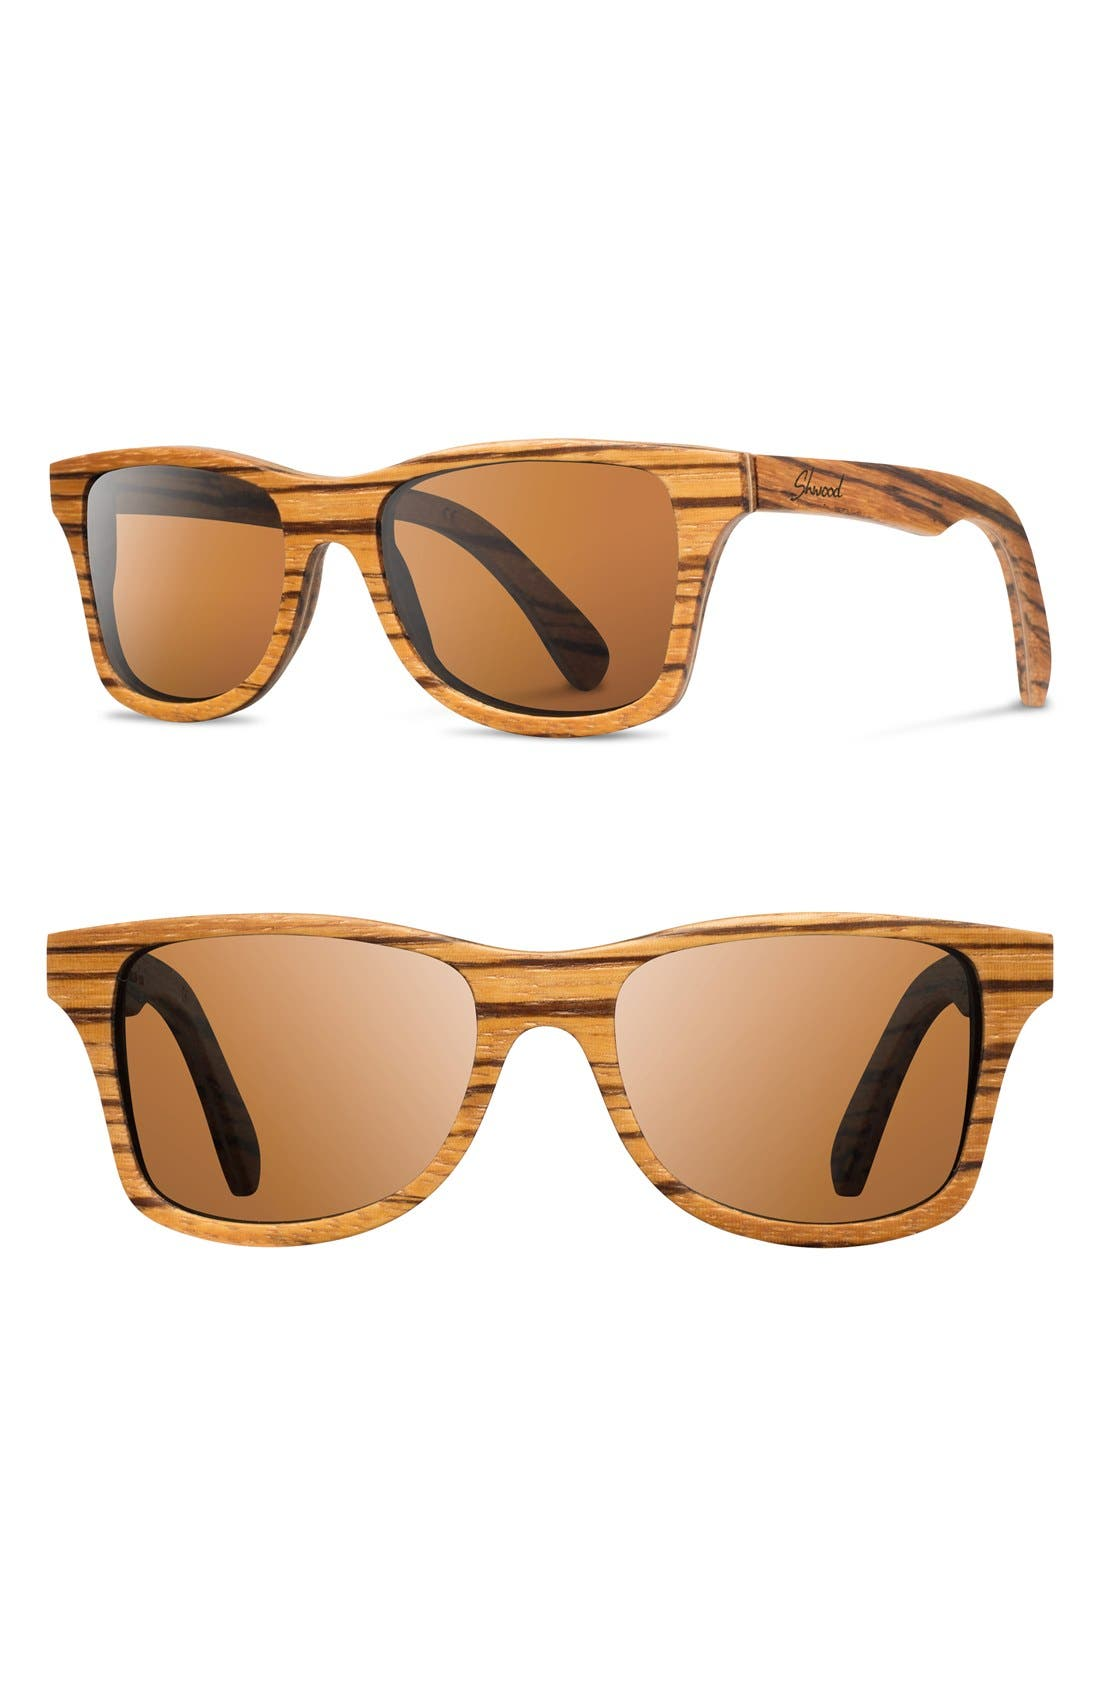 'Canby' 54mm Polarized Wood Sunglasses,                         Main,                         color, 200